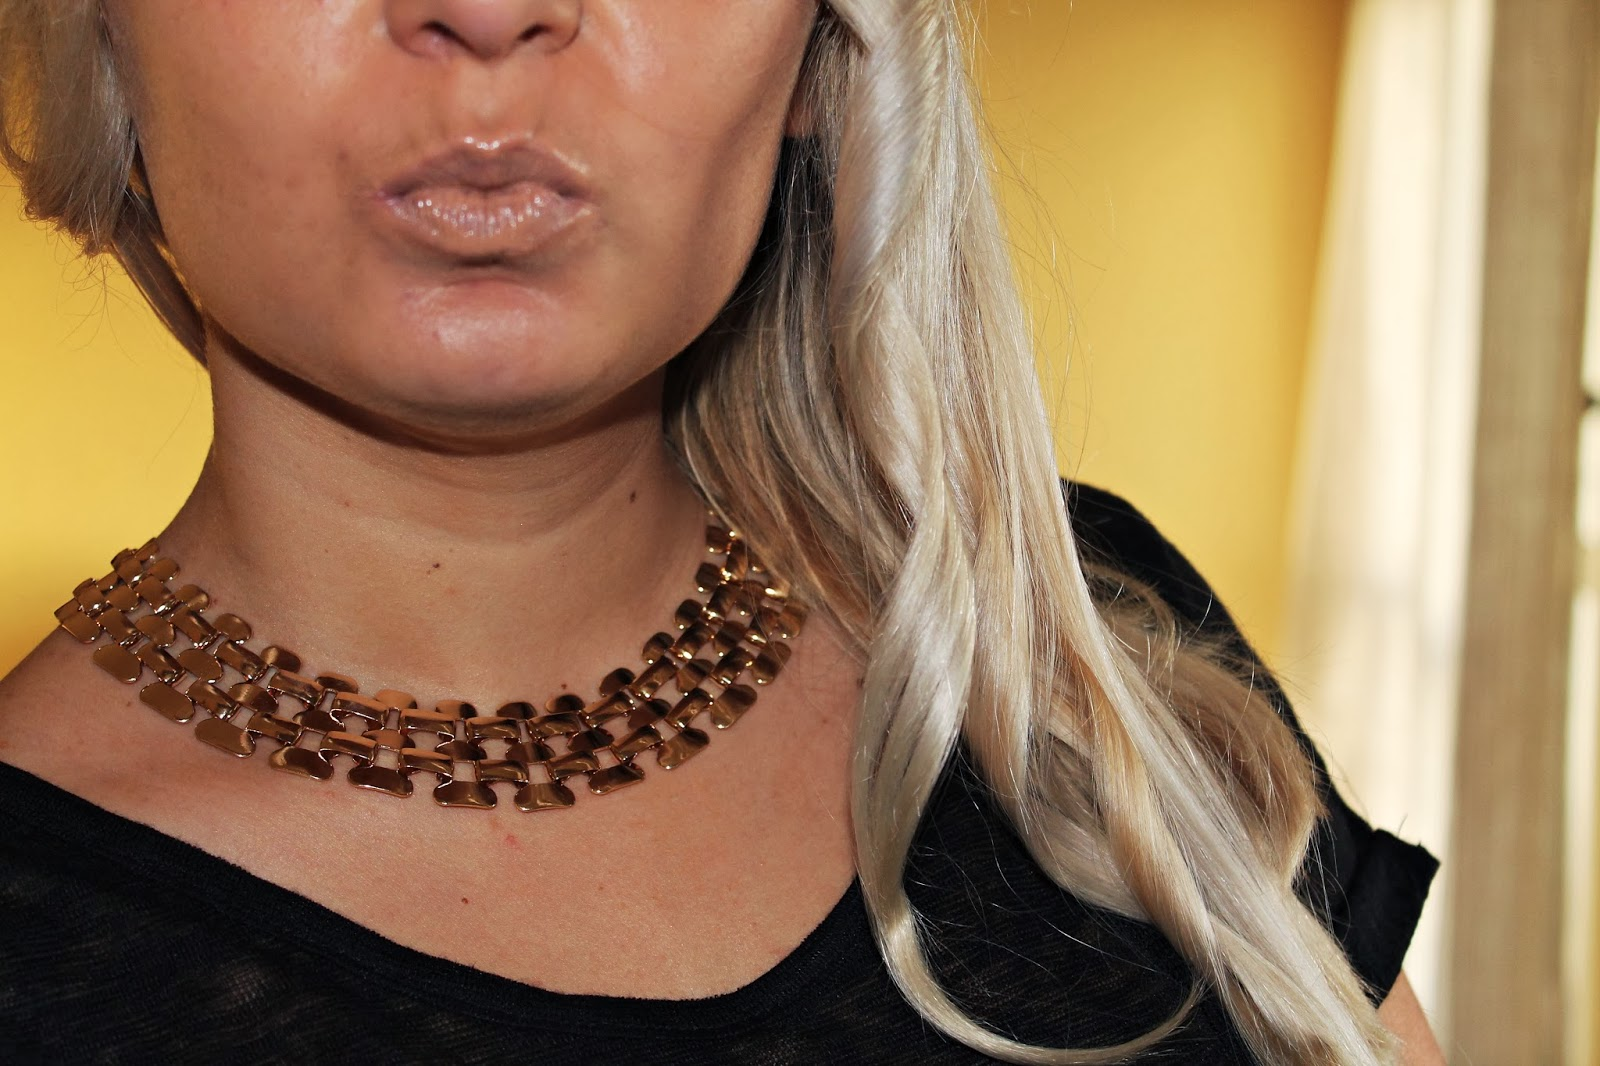 http://www.romwe.com/ROMWE-Hollow-out-Wide-Golden-Necklace%287.9900%29-p-78140.html?xoxoentresaias